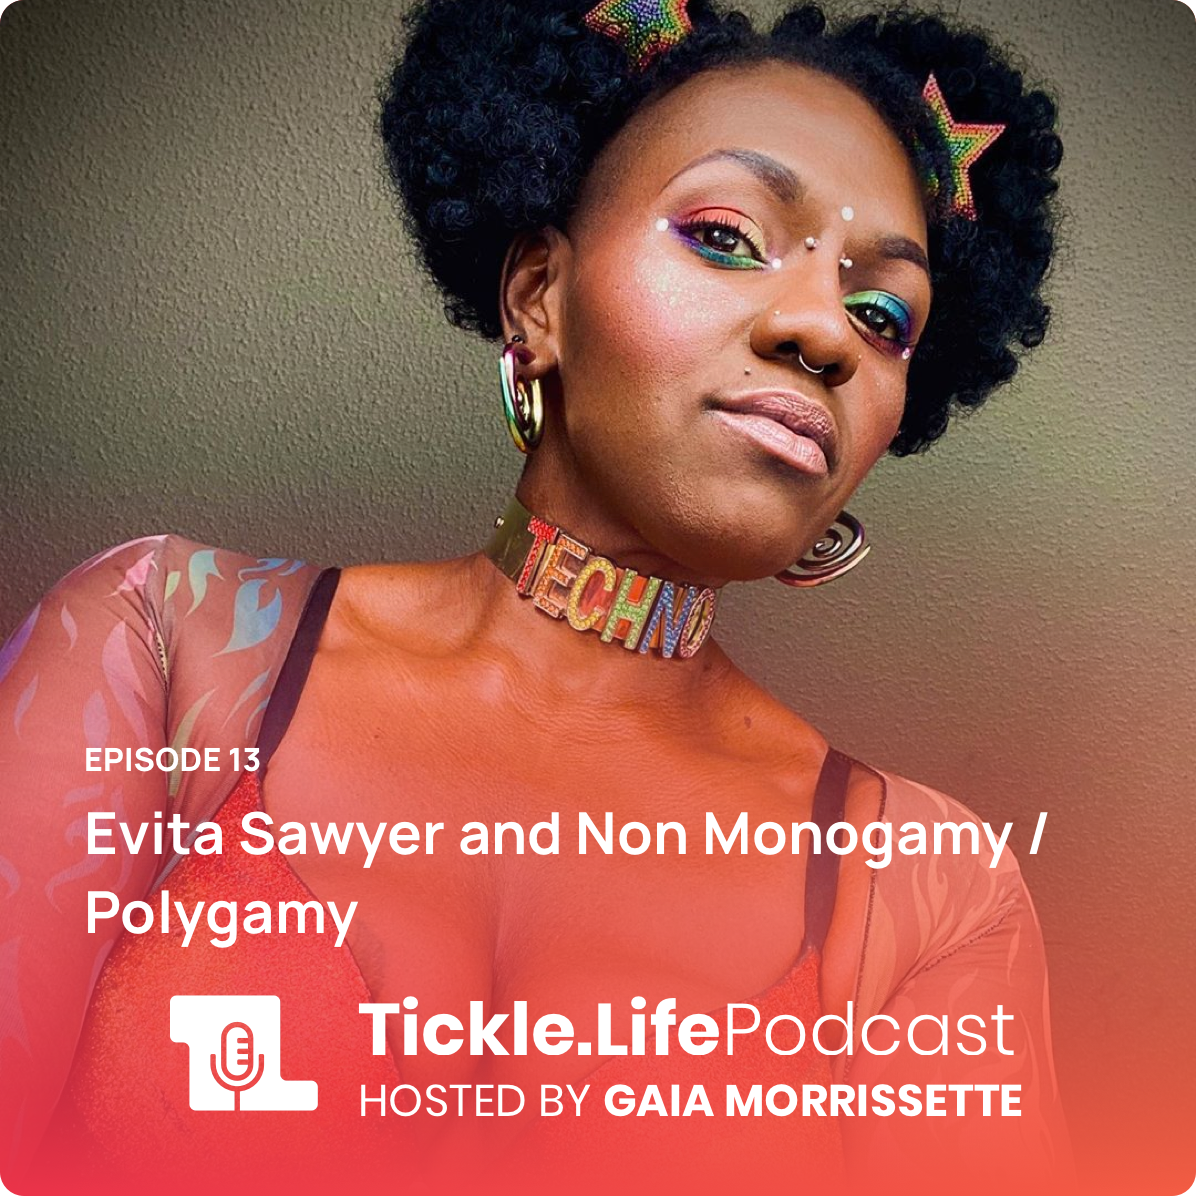 - Evita Sawyer and Non-Monogamy / Polygamy